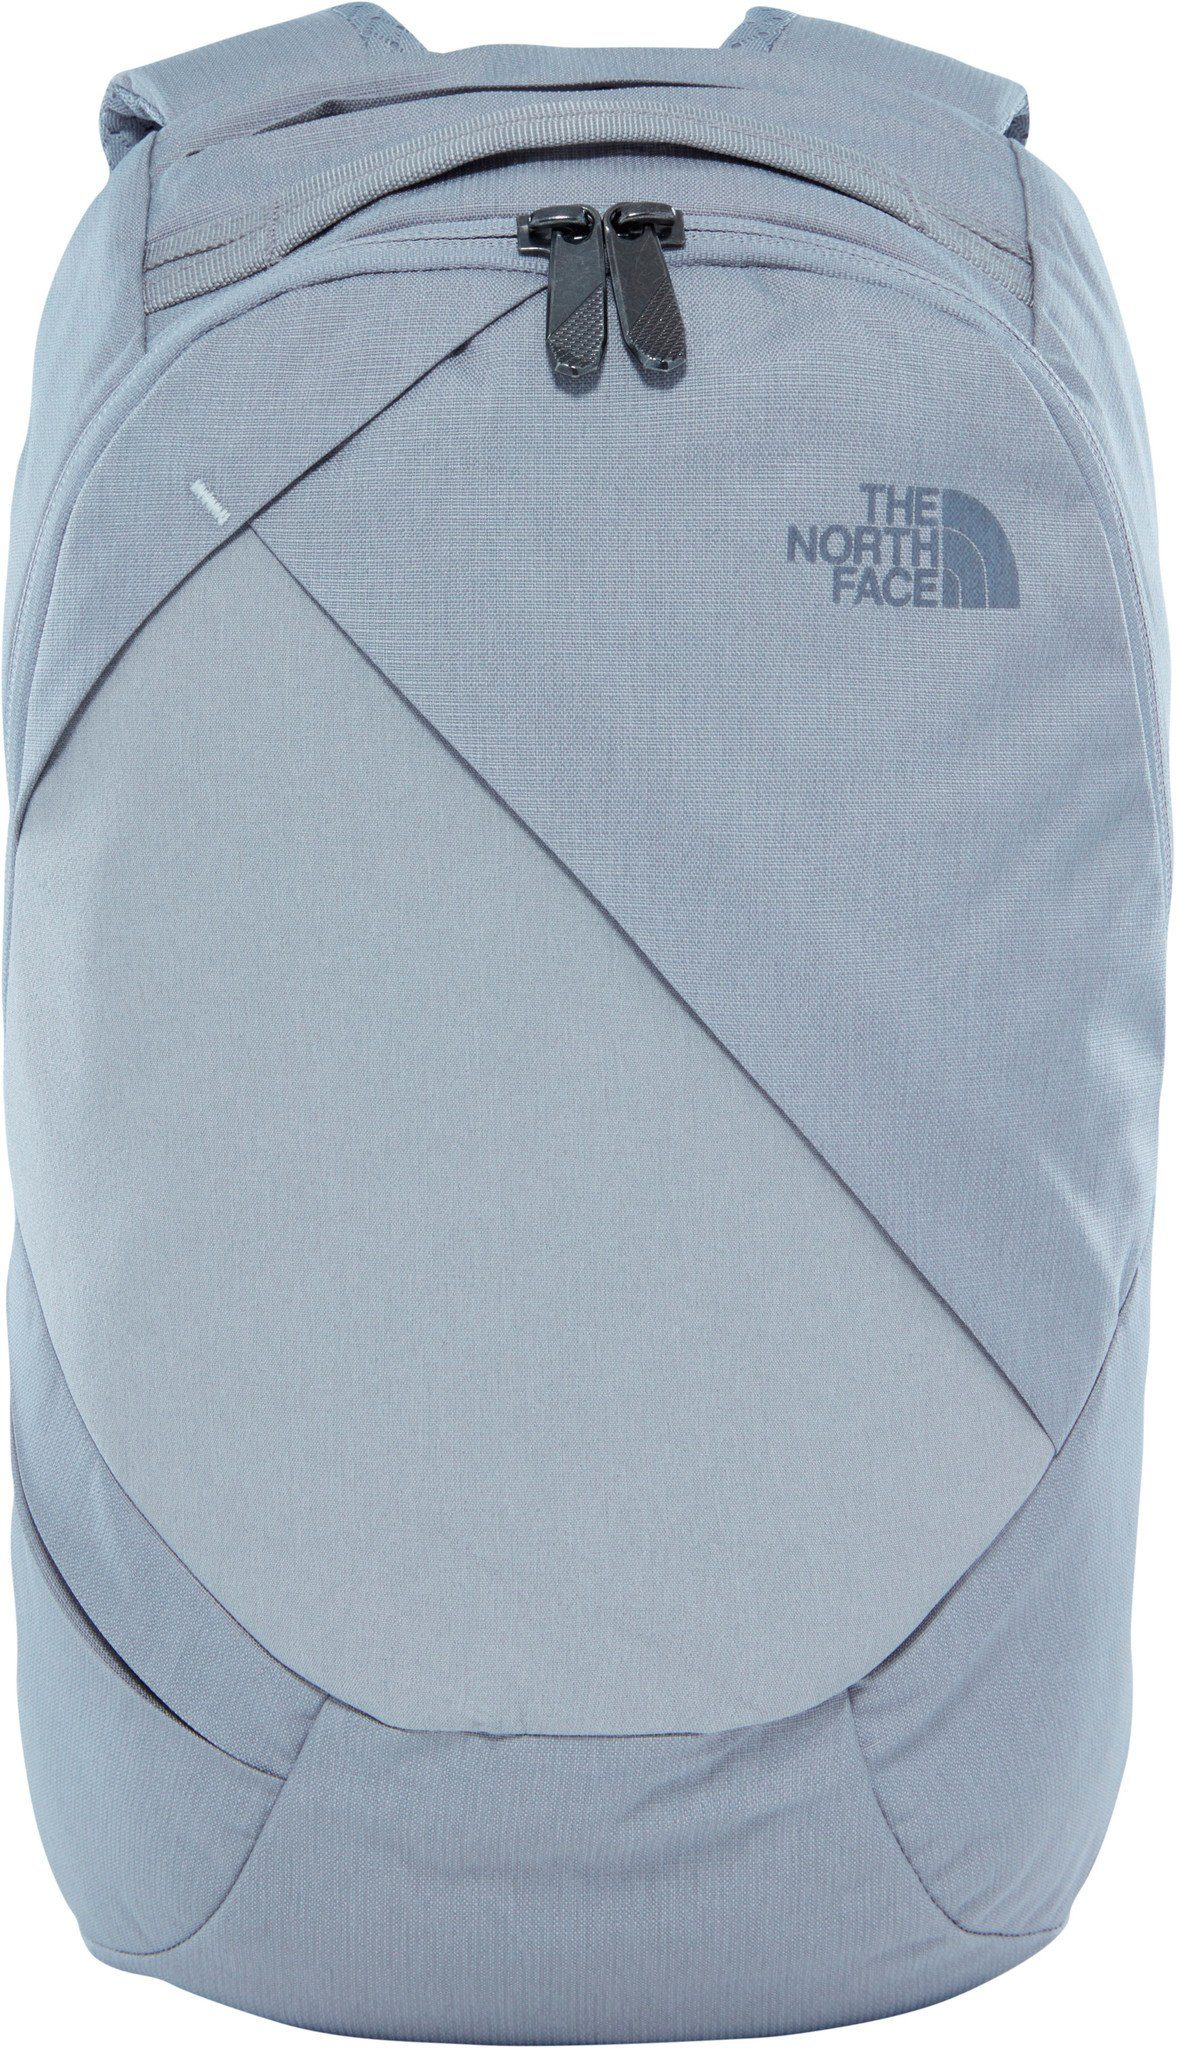 The North Face Wanderrucksack »Electra Backpack Women«